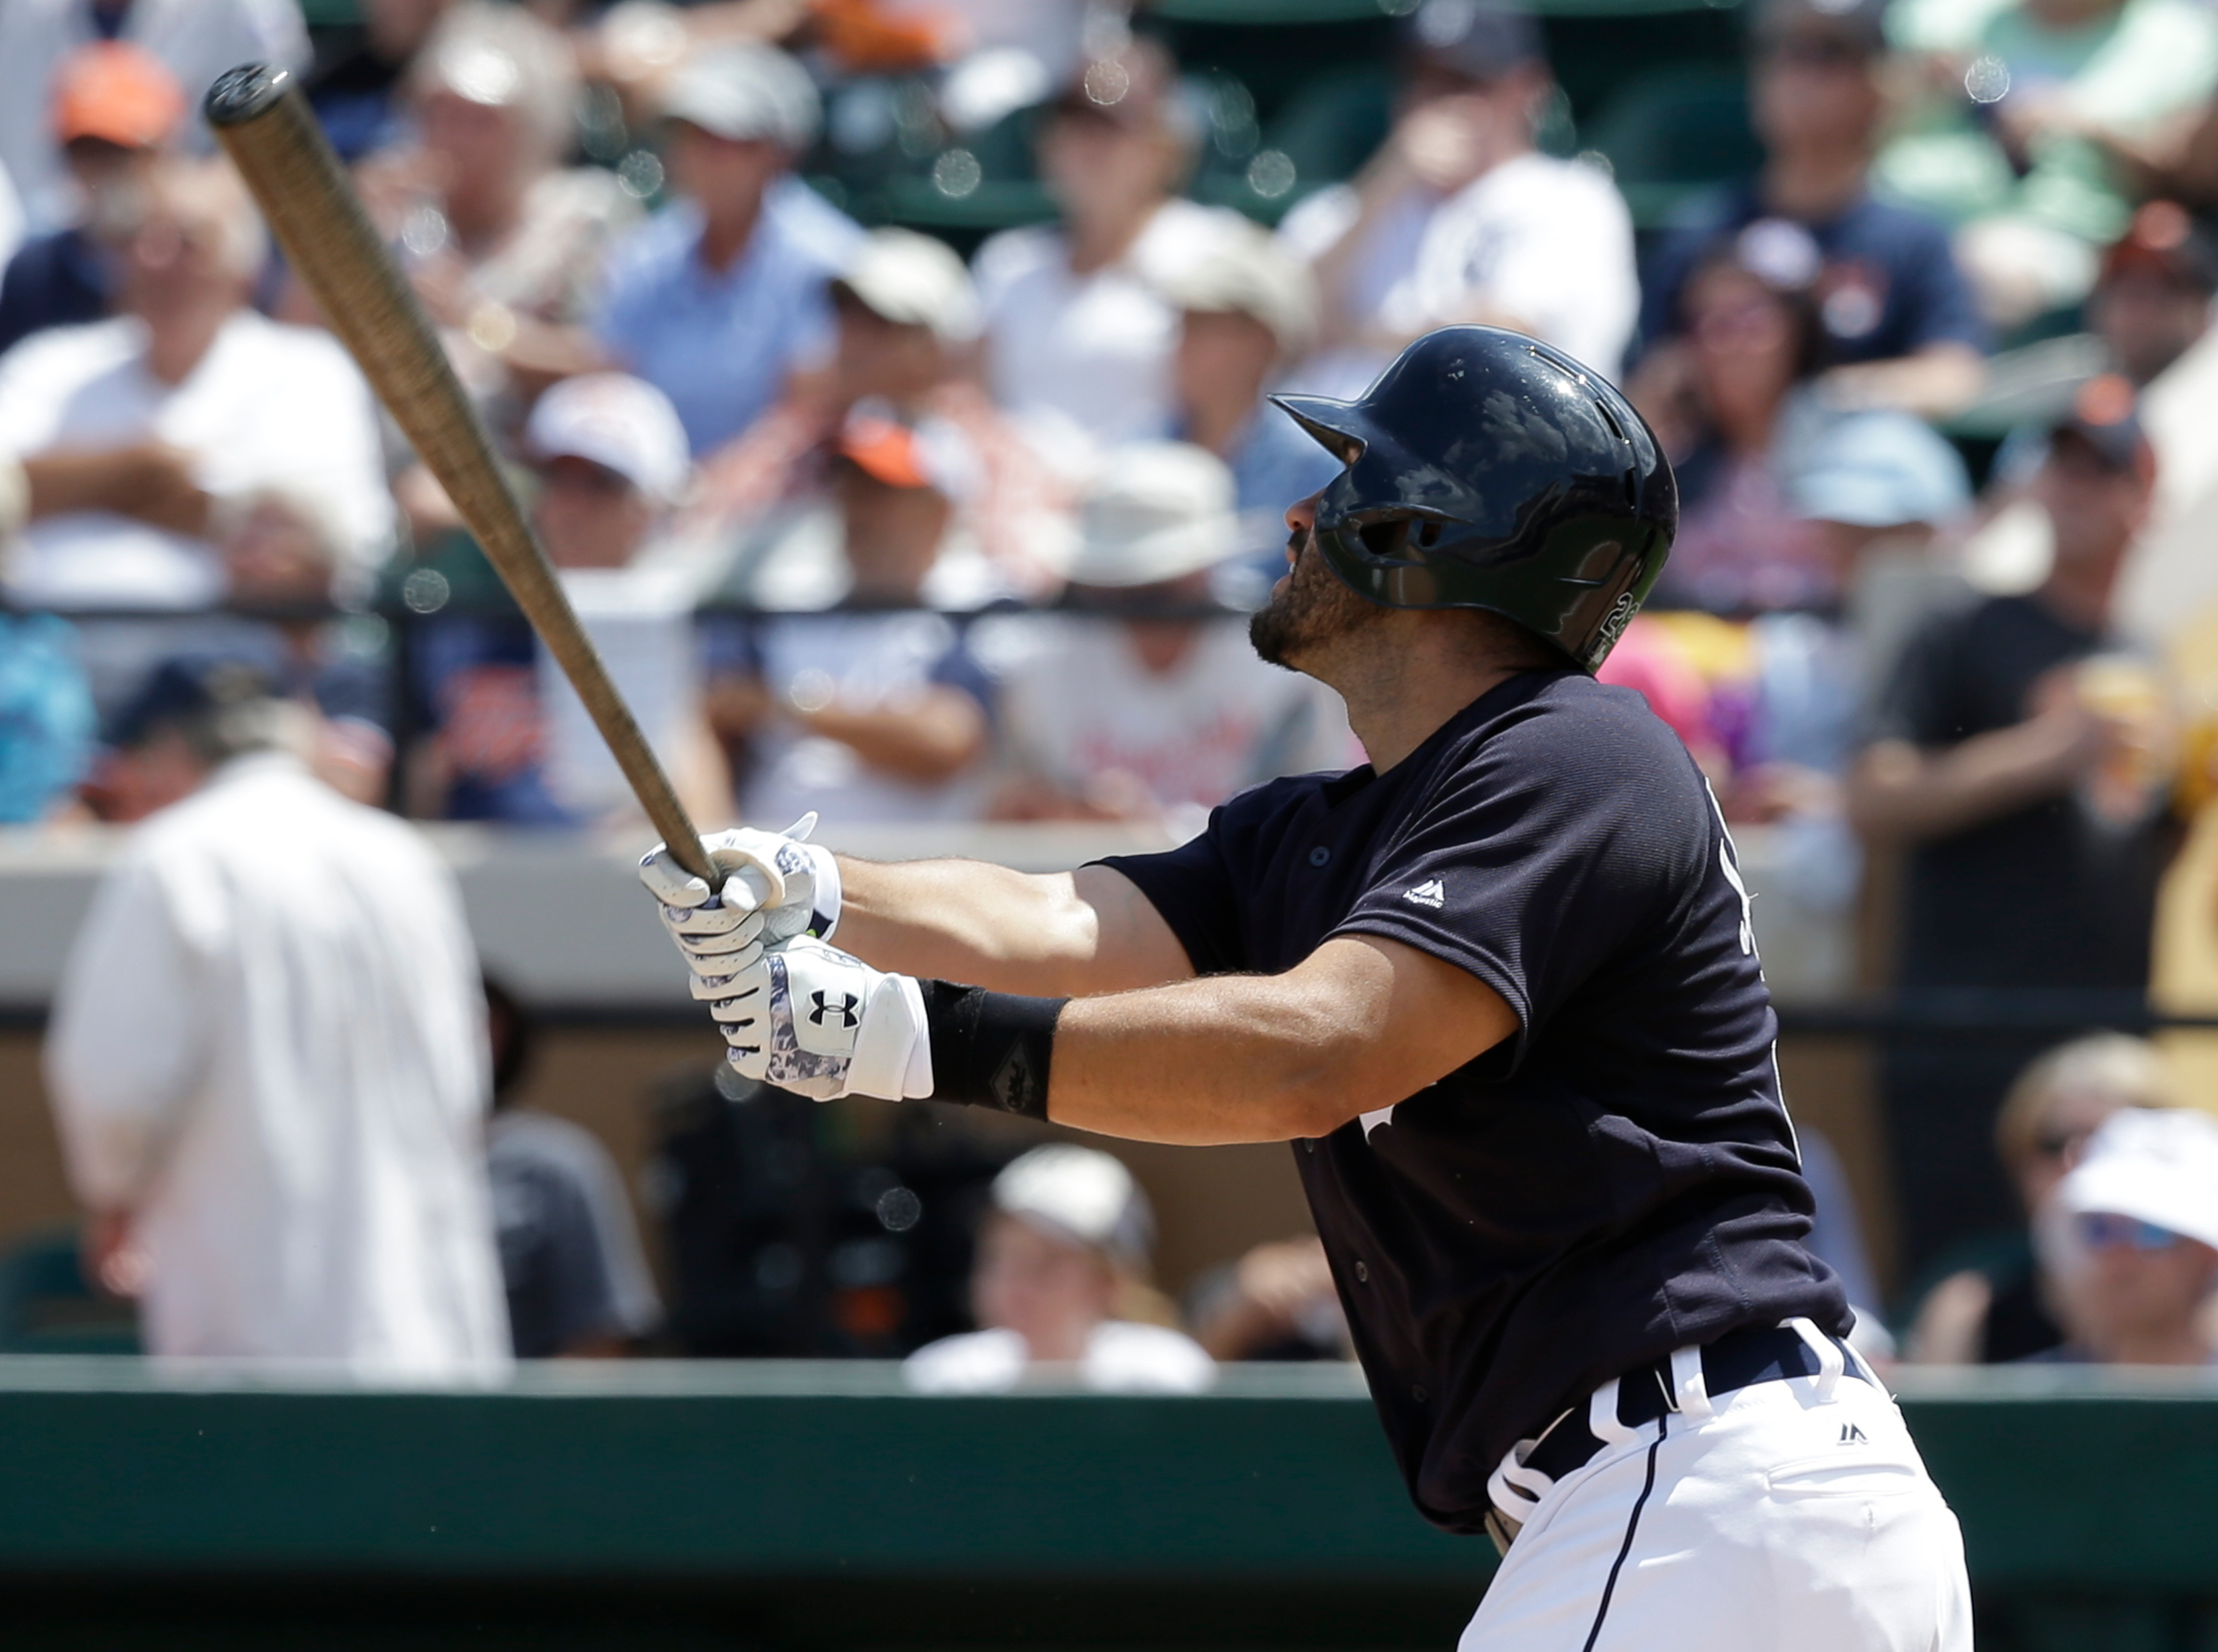 Detroit Tigers' J.D. Martinez hits a home run in the fourth inning against the New York Yankees in a spring training baseball game, Thursday, March 31, 2016, in Lakeland, Fla. (AP Photo/John Raoux)